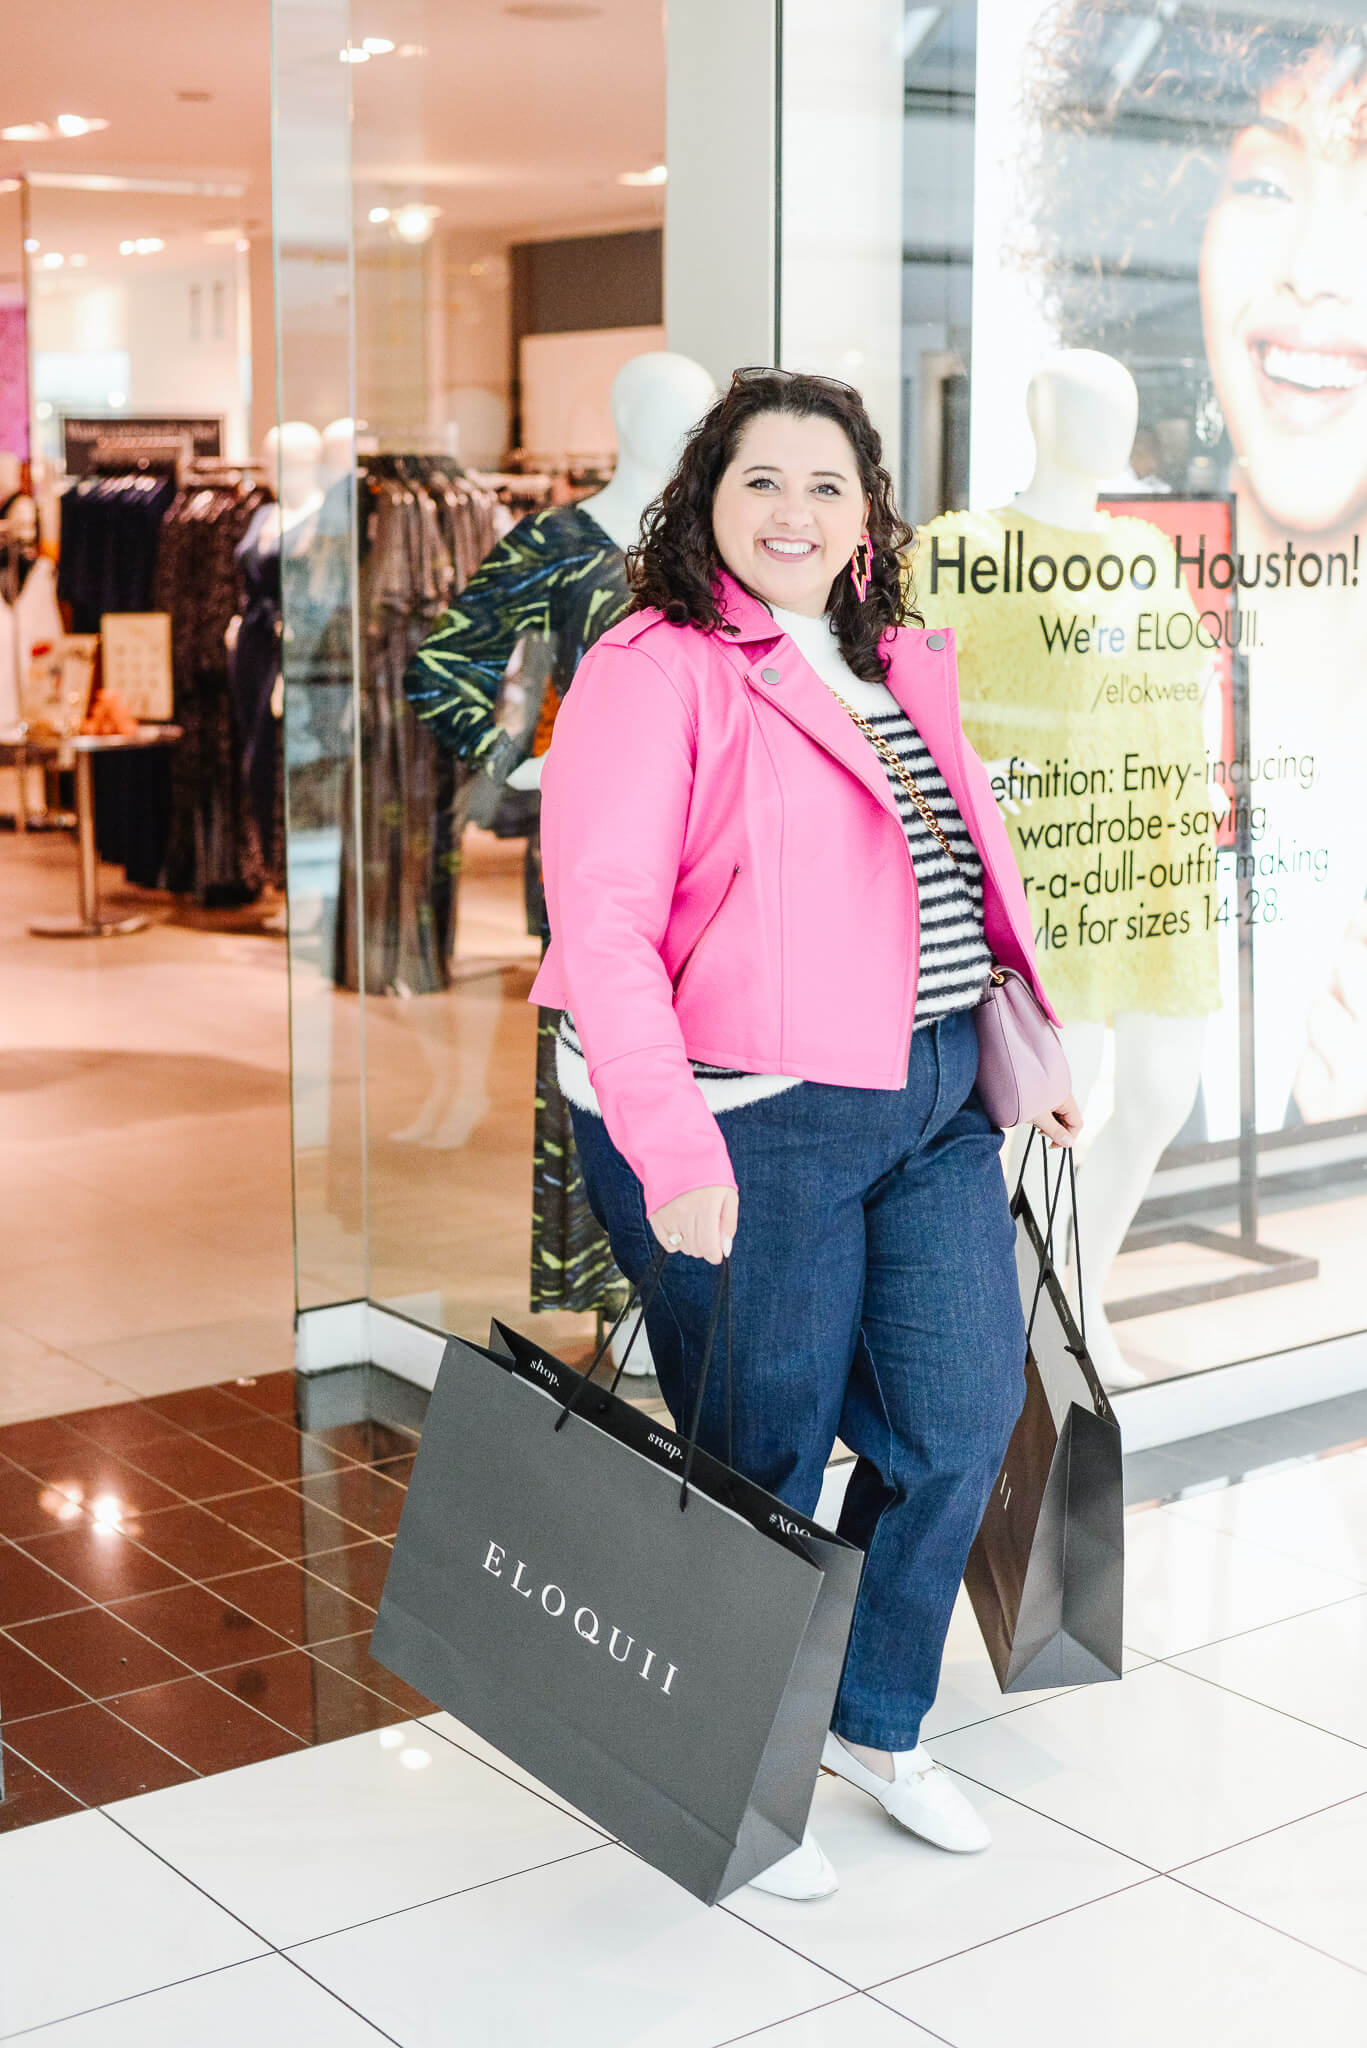 Shopping at the new Eloquii store in Houston has been so much fun. I love being able to try on these items before bringing them home.